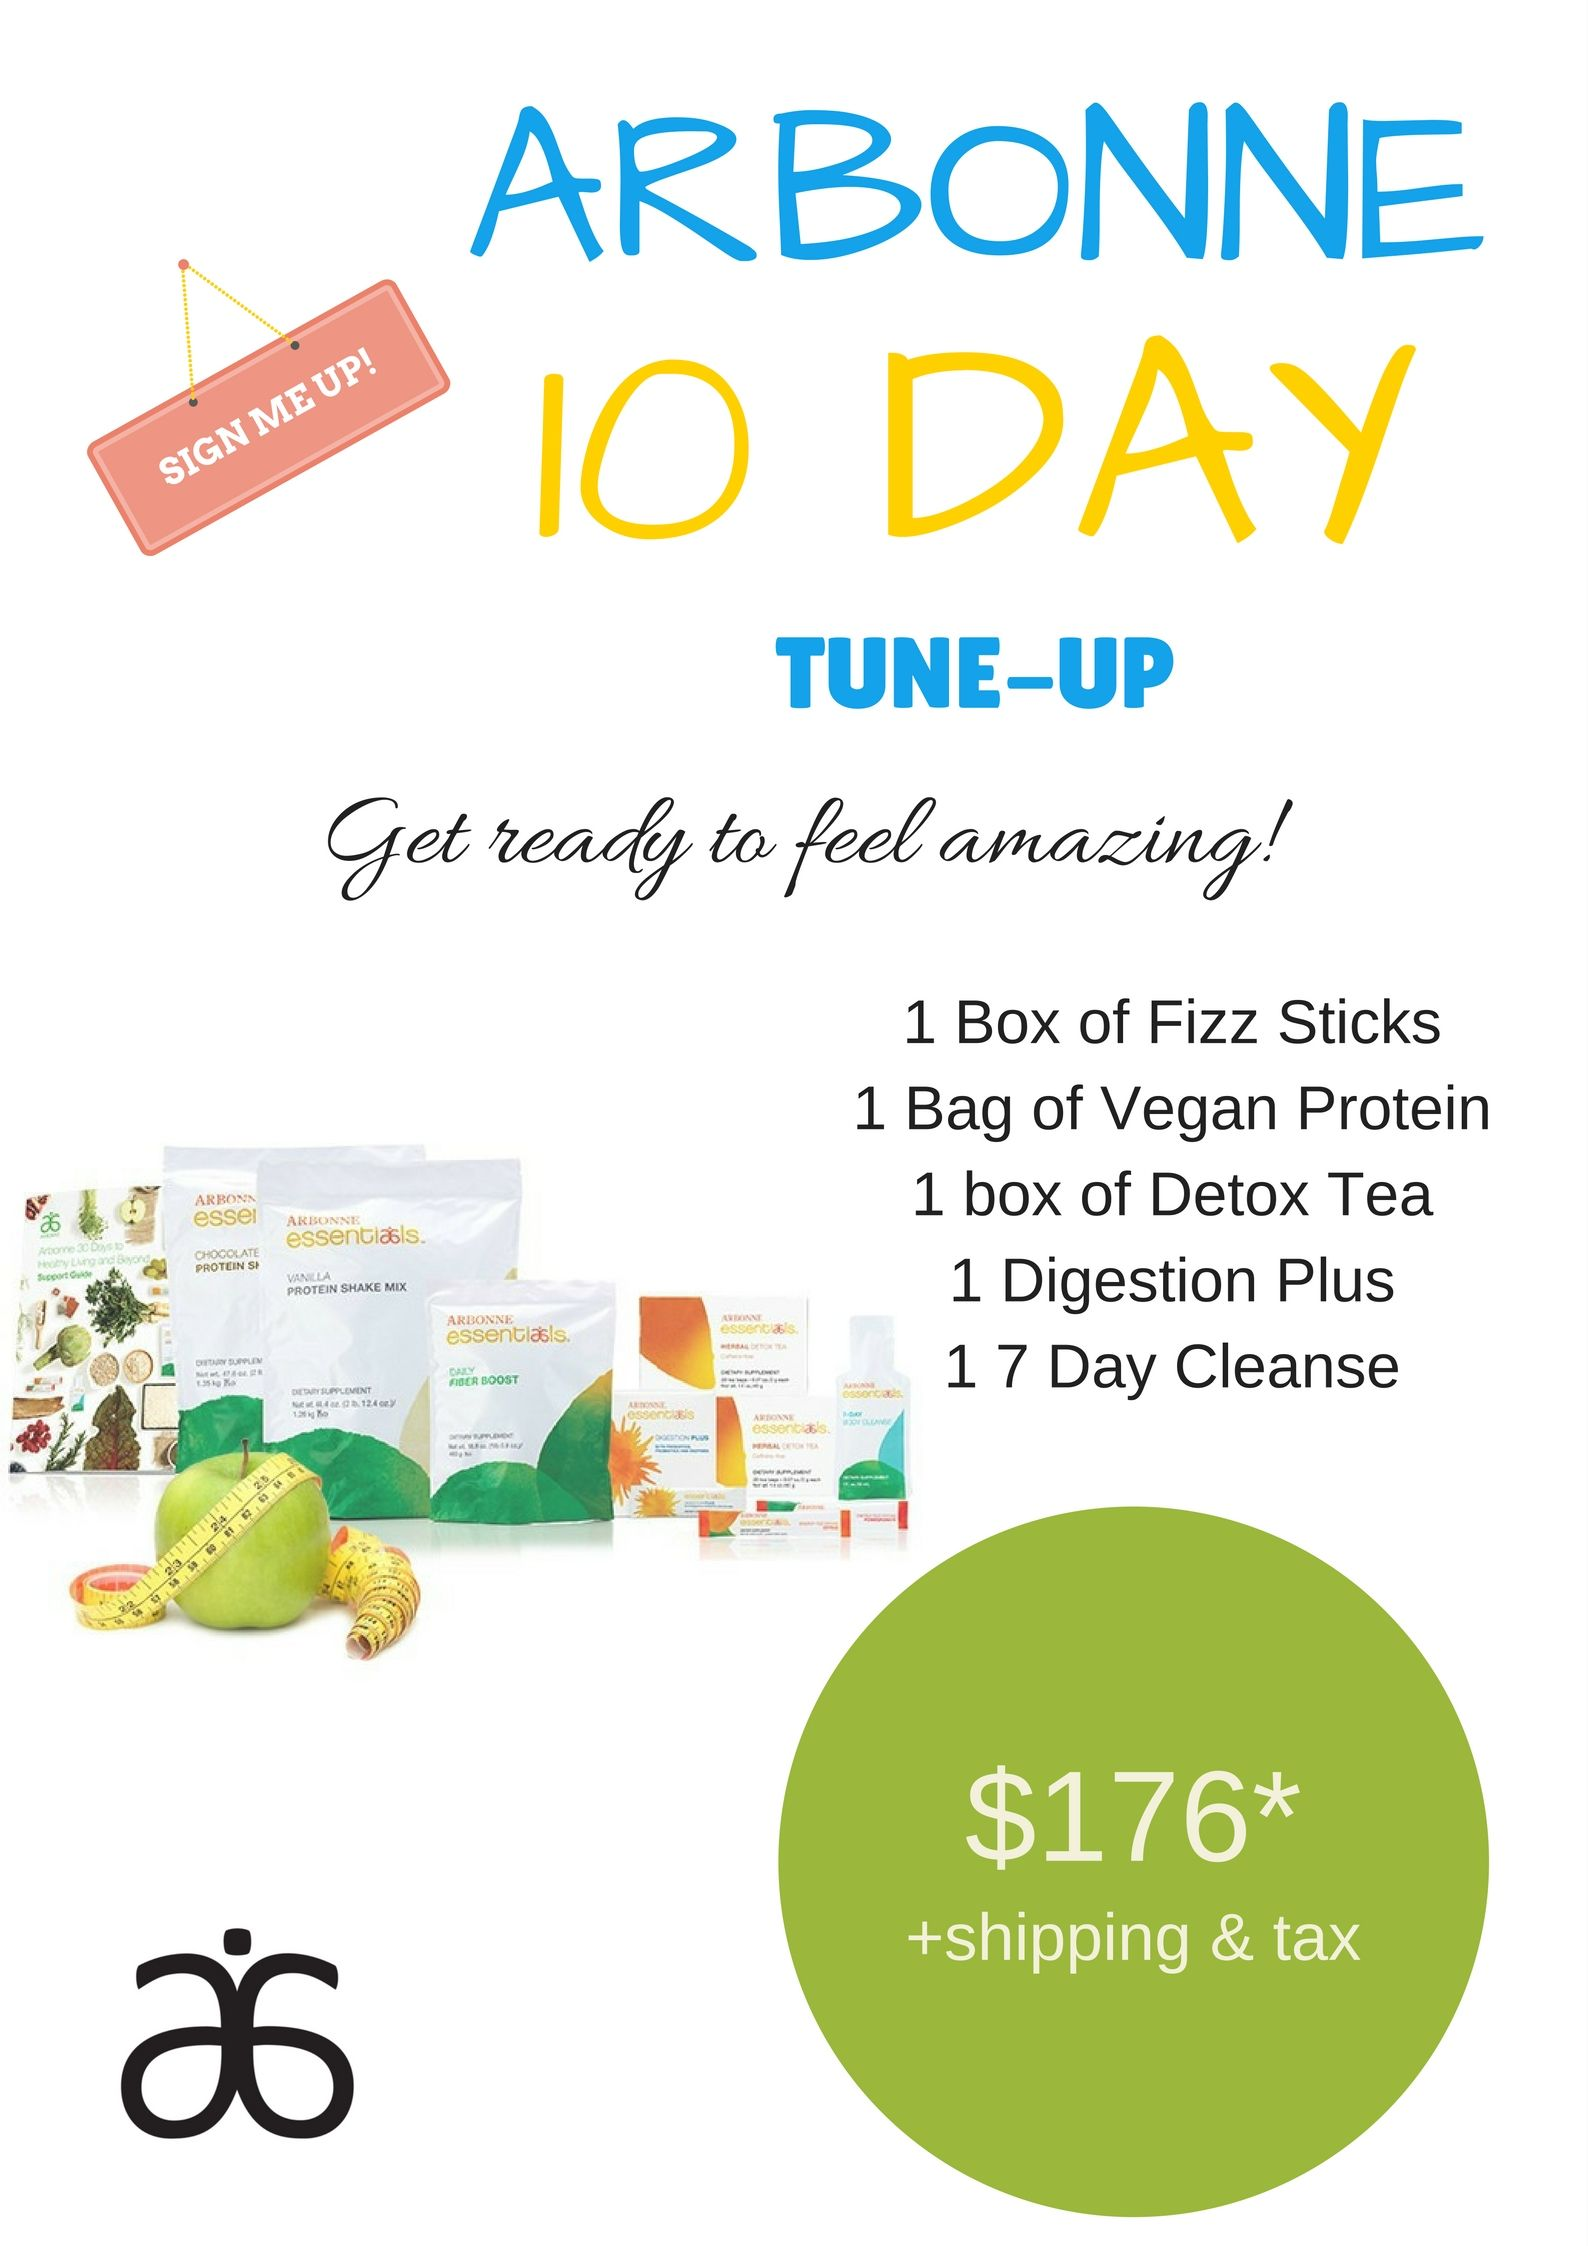 10 Day Tune-Up, for those who do not want to commit to the 30 Day Detox  Challenge #arbonne ID#22815960 kristenfrank.arbonne.com